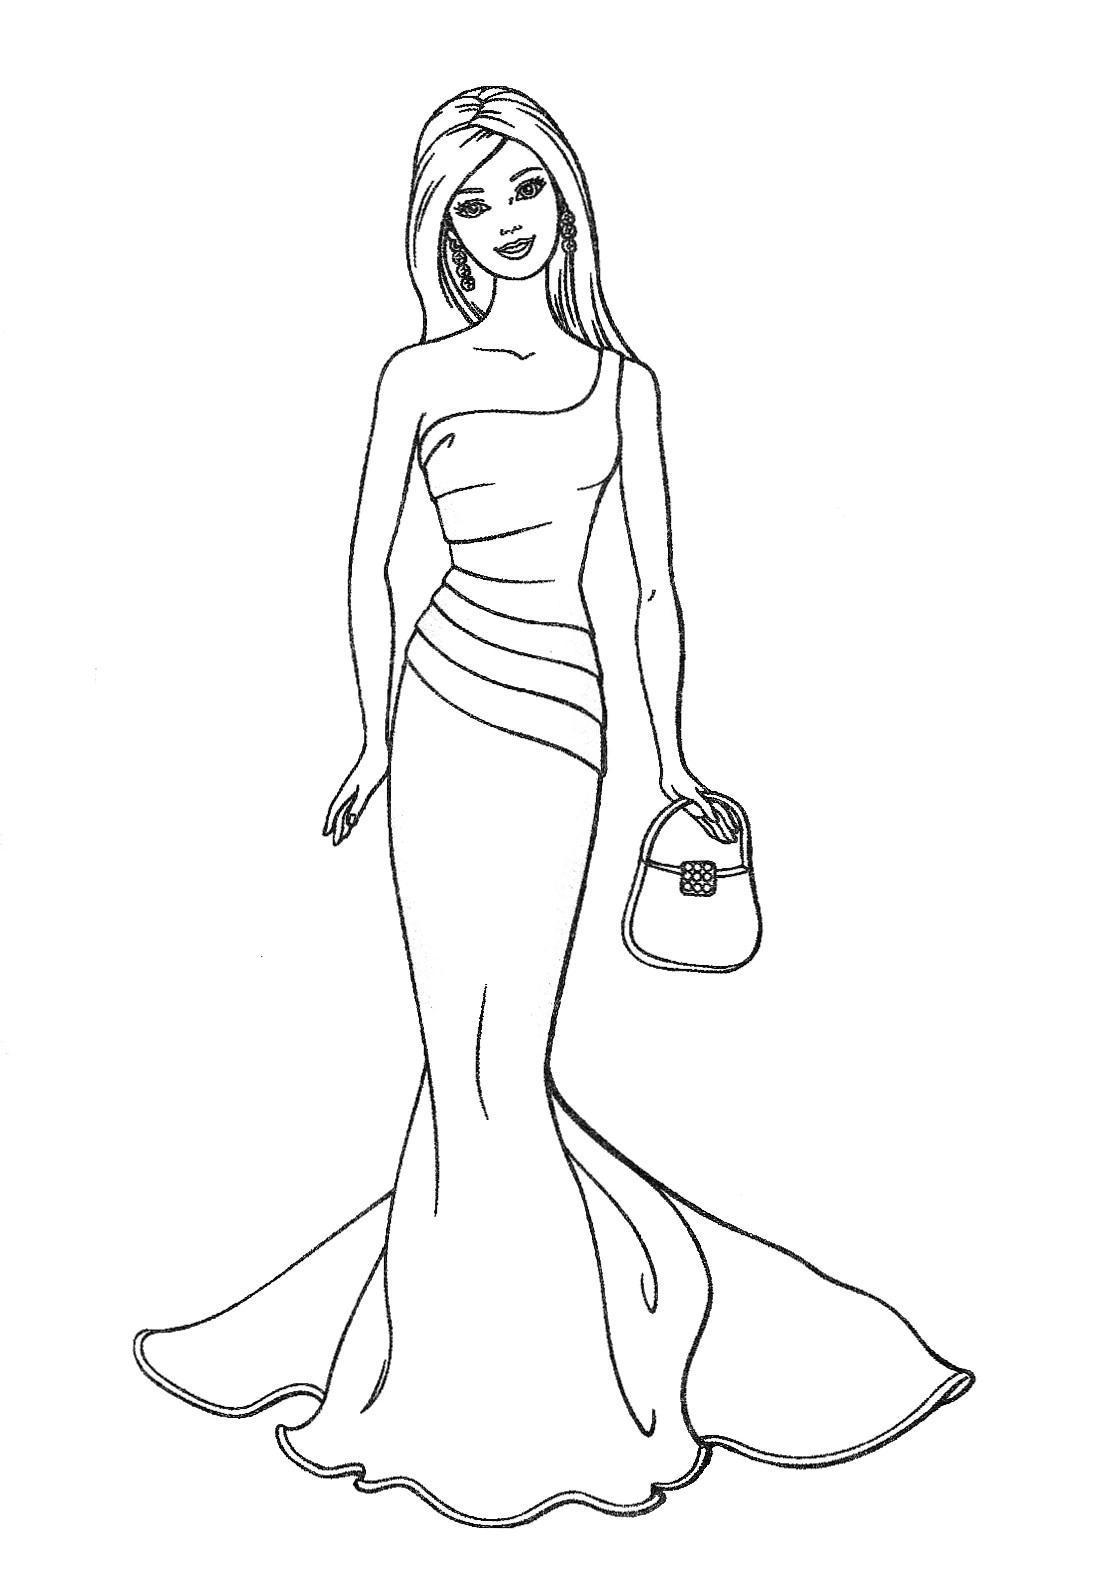 Coloriage de barbie imprimer coloriages barbie coloriages pour enfants - Dessin de barbie facile ...